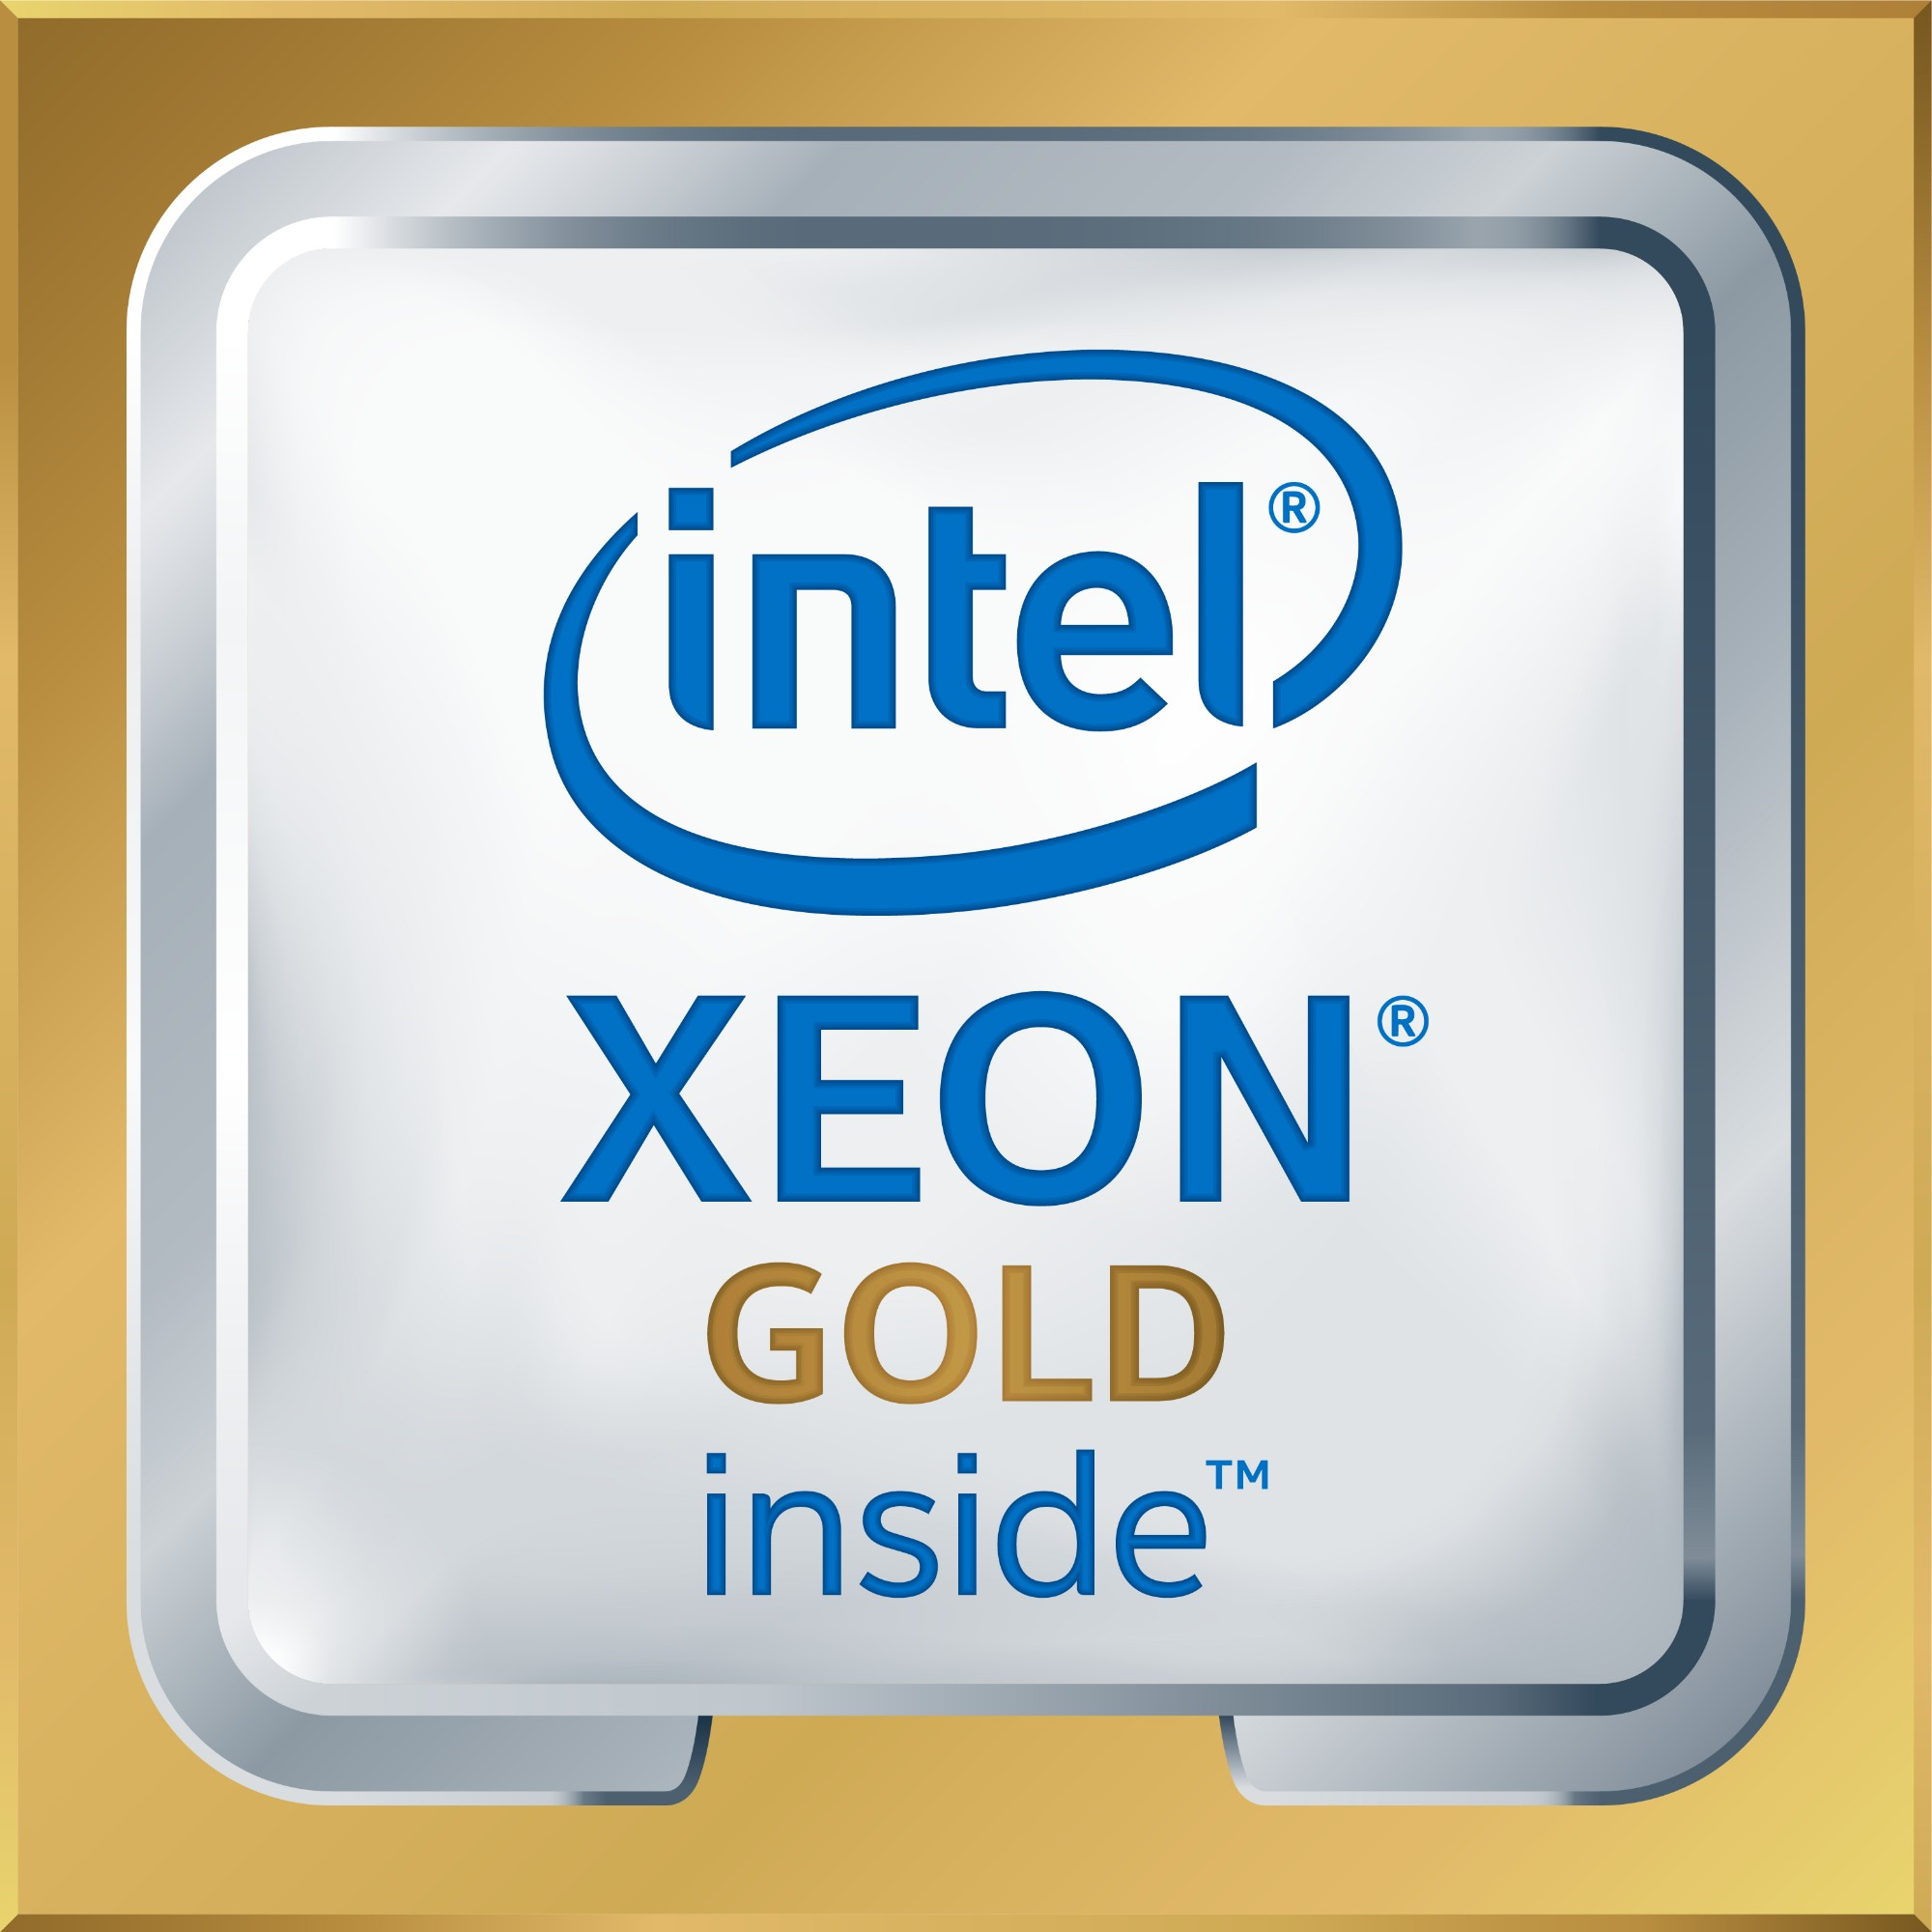 Intel Xeon 6128 processor 3.40 GHz 19.3 MB L3